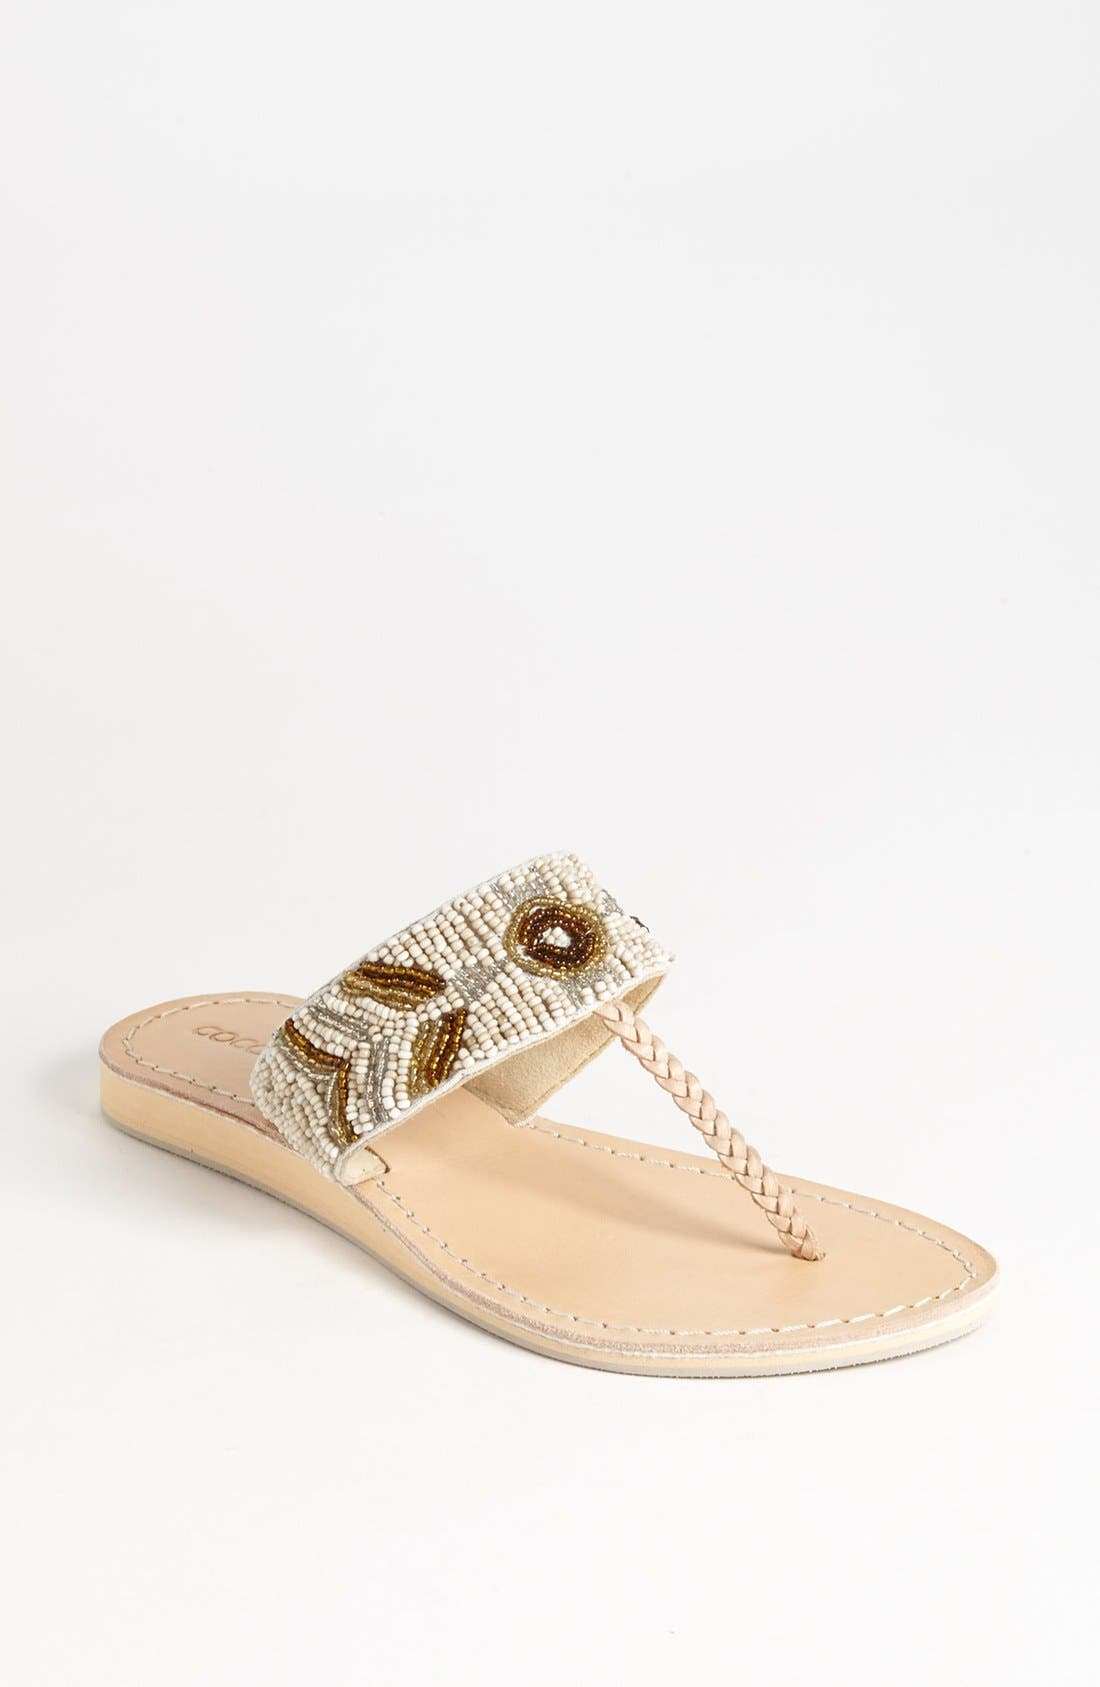 Alternate Image 1 Selected - Cocobelle 'Native' Sandal